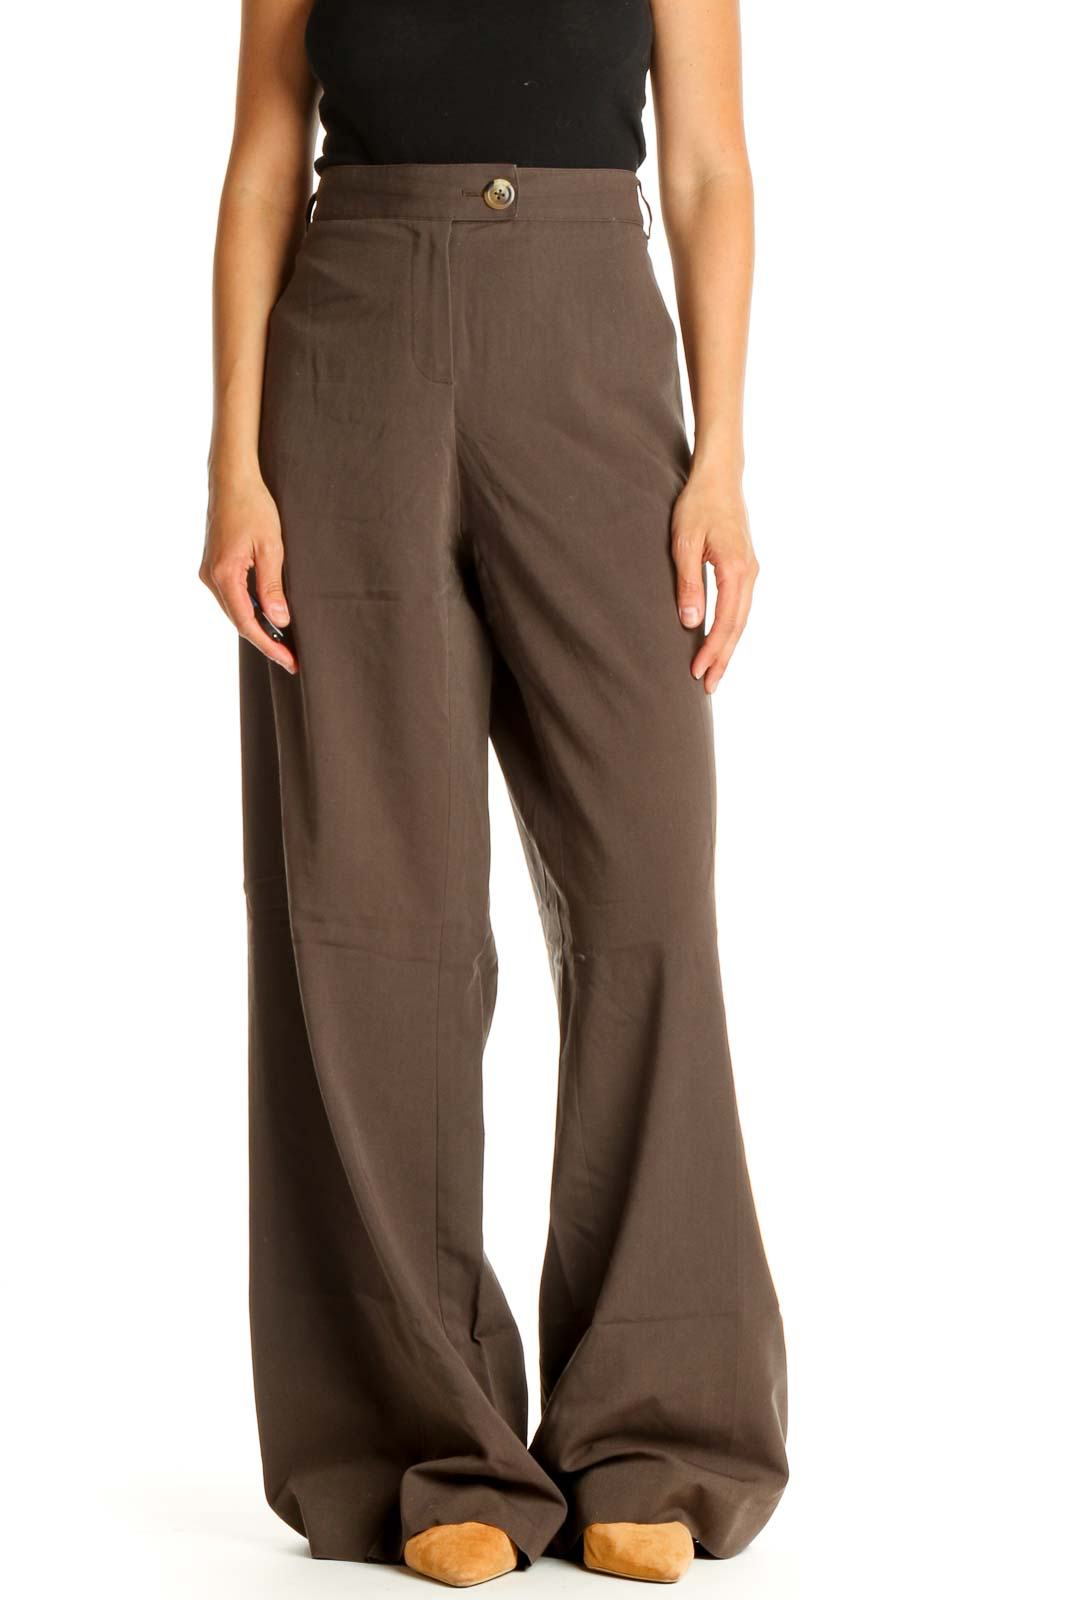 Brown Printed All Day Wear Trousers Front